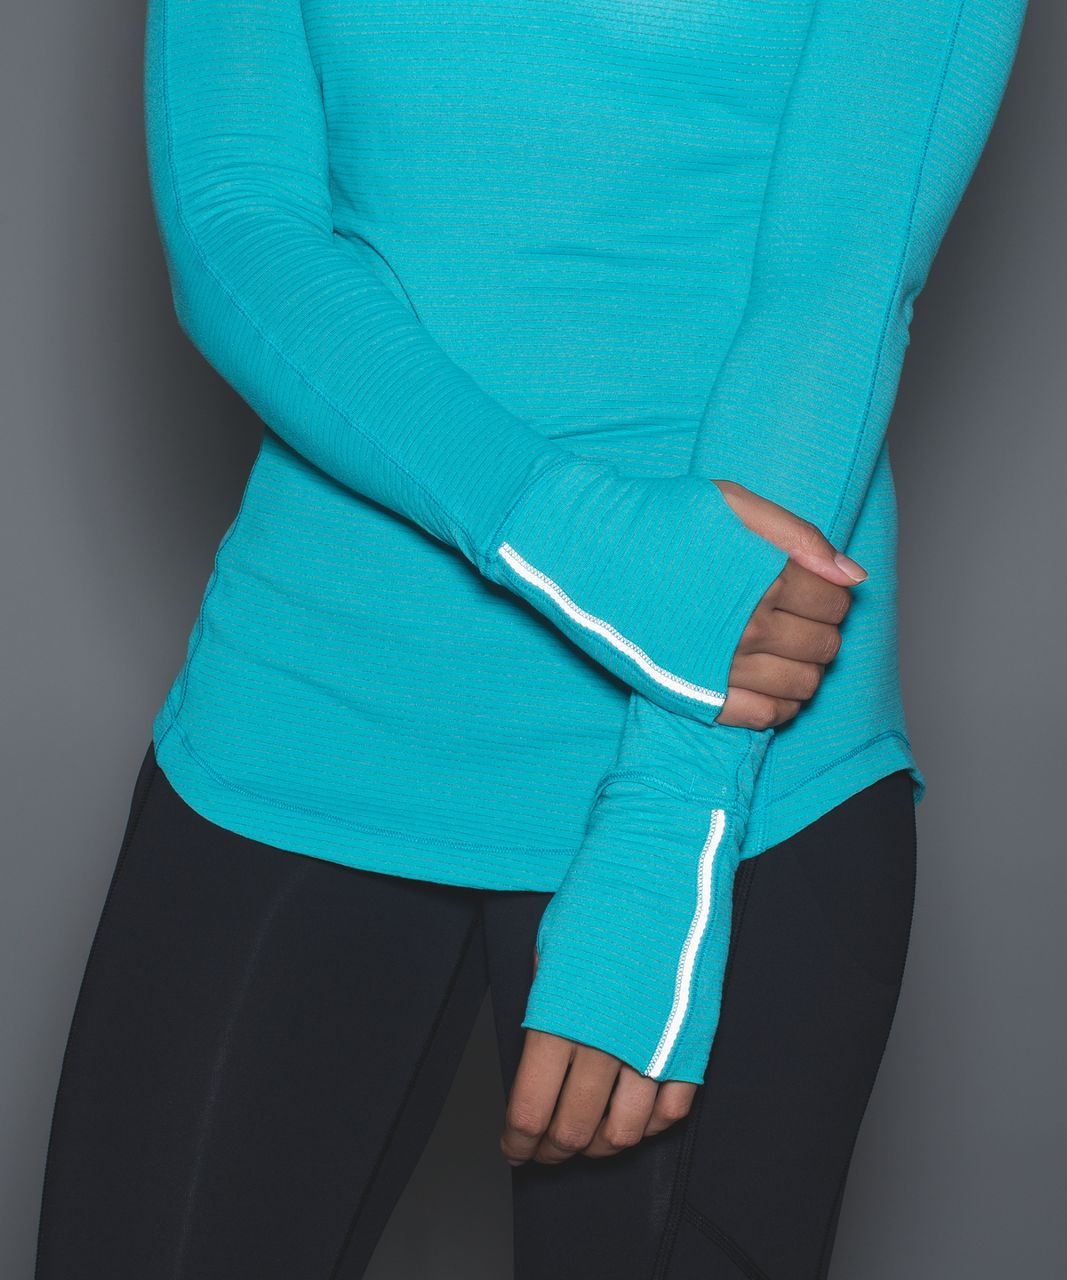 Lululemon 5 Mile Long Sleeve - Peacock Blue